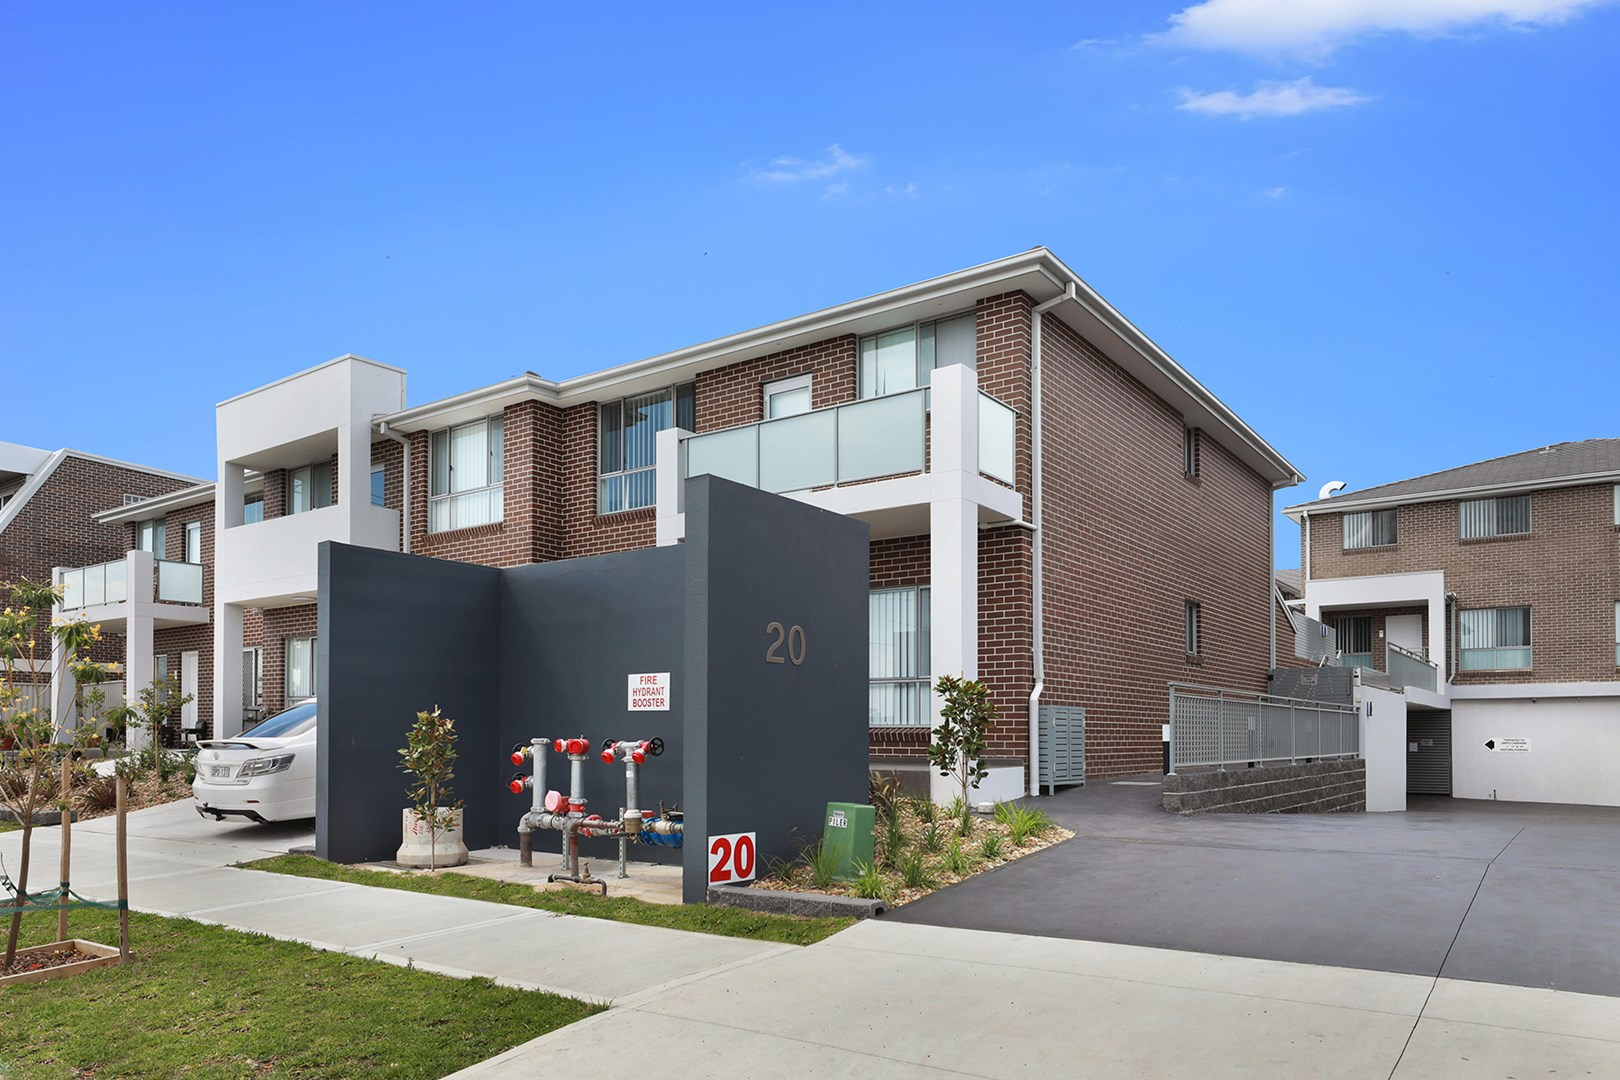 13/20 Old Glenfield Road, Casula NSW 2170, Image 0